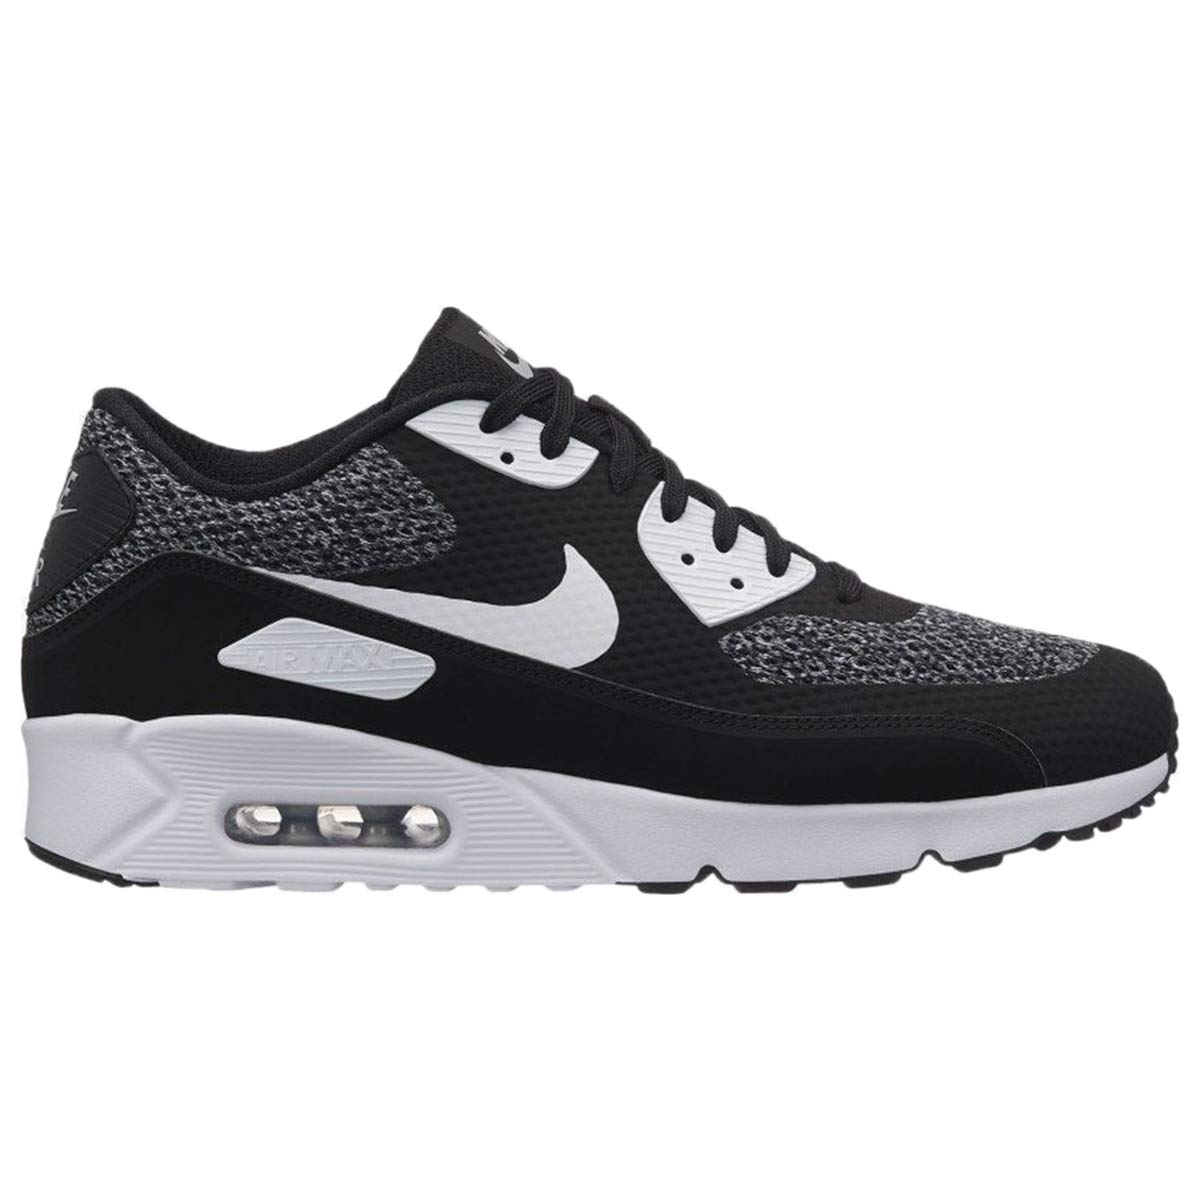 Nike Air Max 90 Ultra 2.0 Essential Mens Style: 875695 019 Size: 7